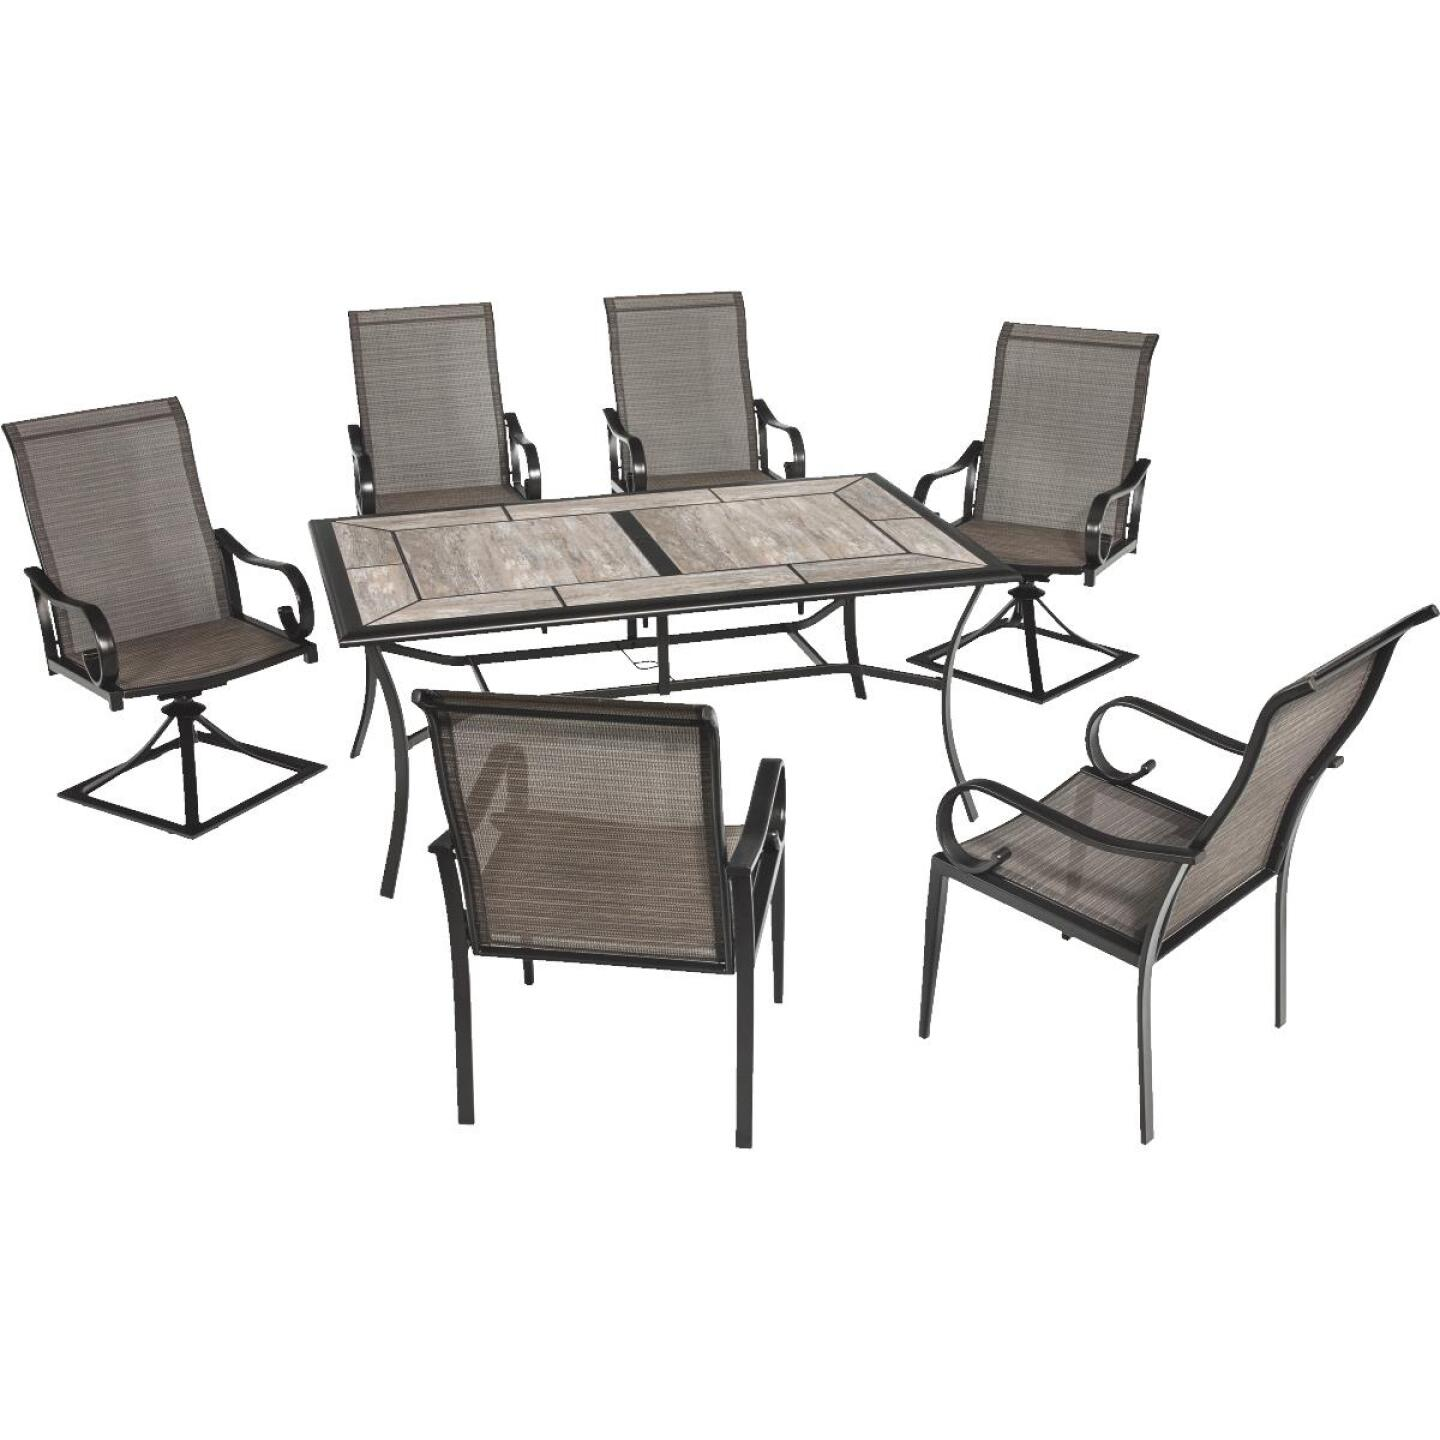 Outdoor Expressions Berkshire 7-Piece Dining Set Image 277